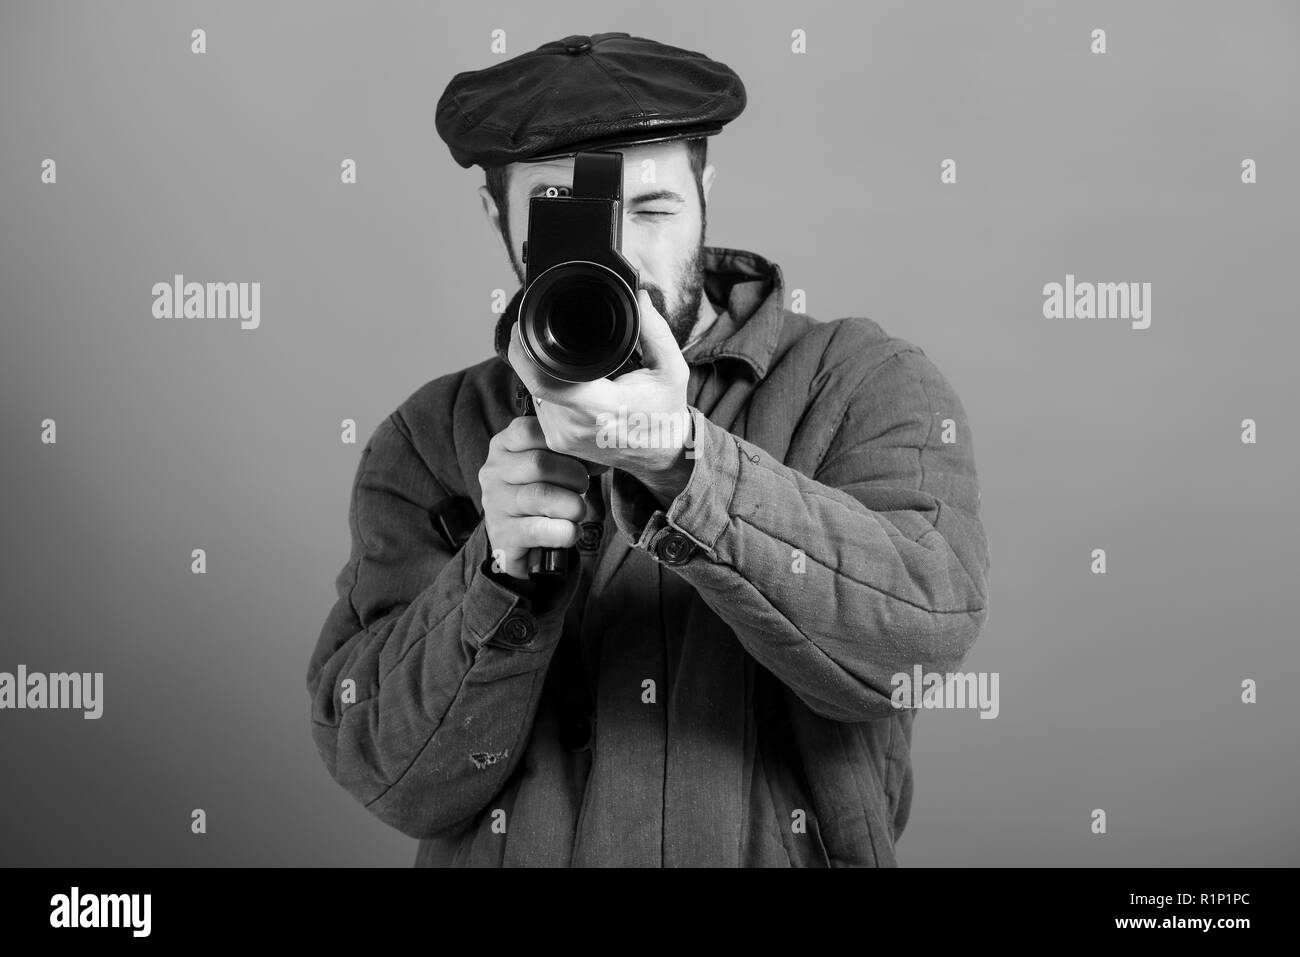 Idea- cinema industry. Cameraman with retro camera in his hands, studio shot, monochrome effect. Bearded man in old-fashioned dress - Stock Image